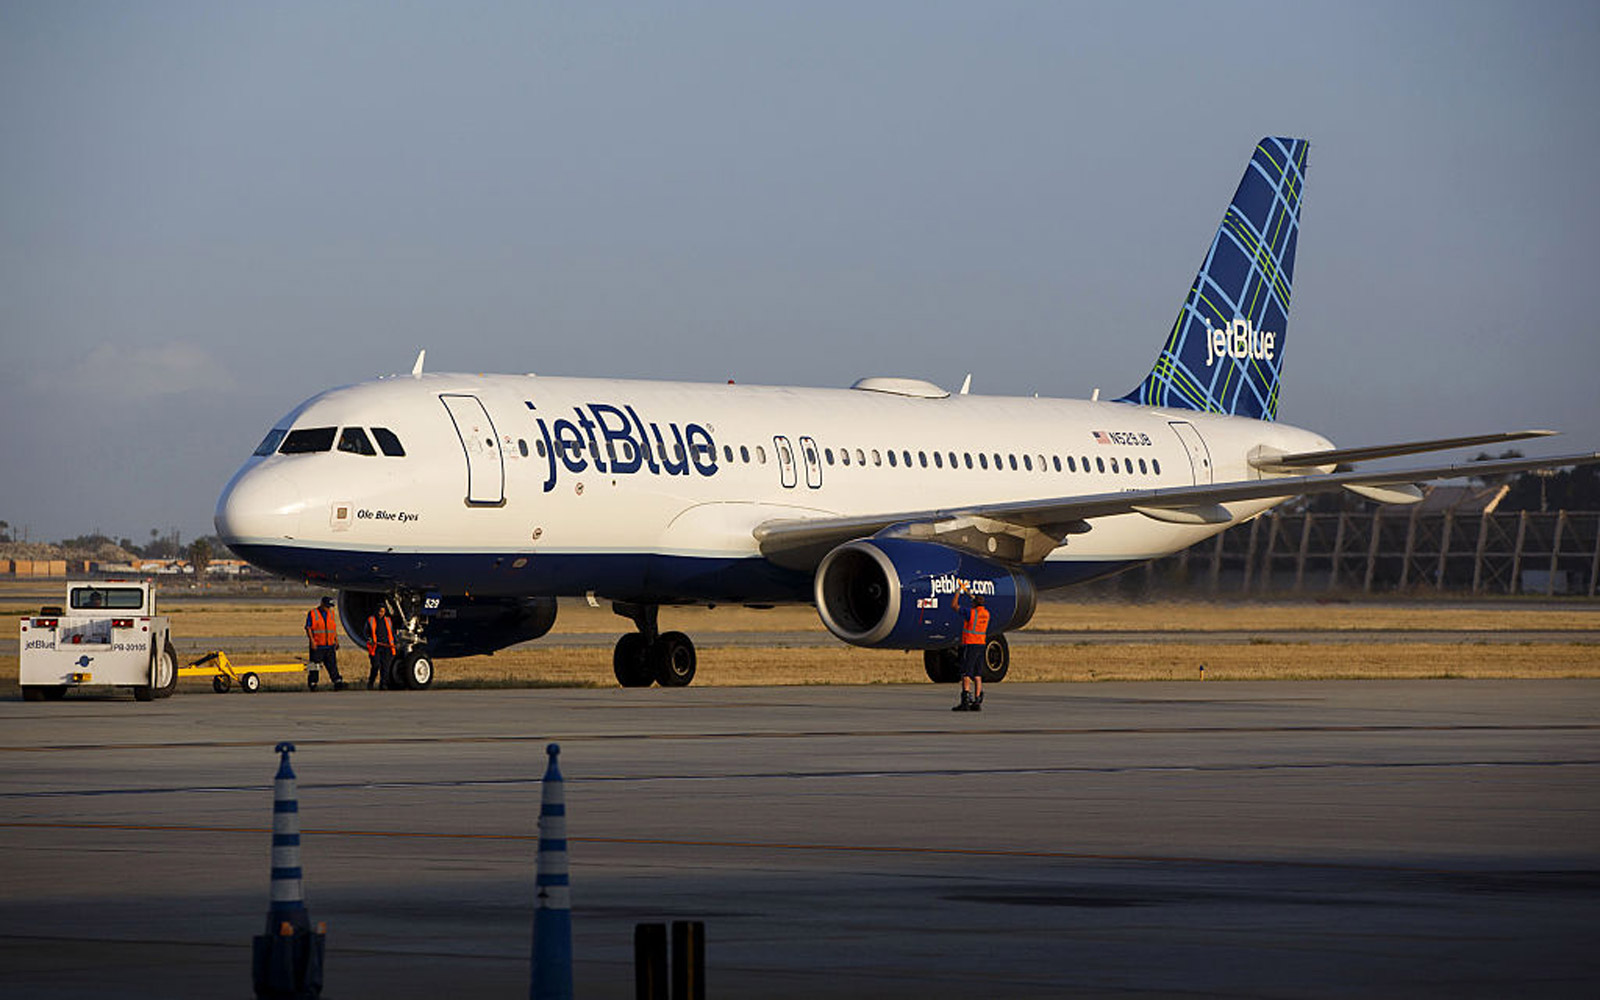 Family Says JetBlue Booted Them From Plane After Their Toddler Kicked a Seat